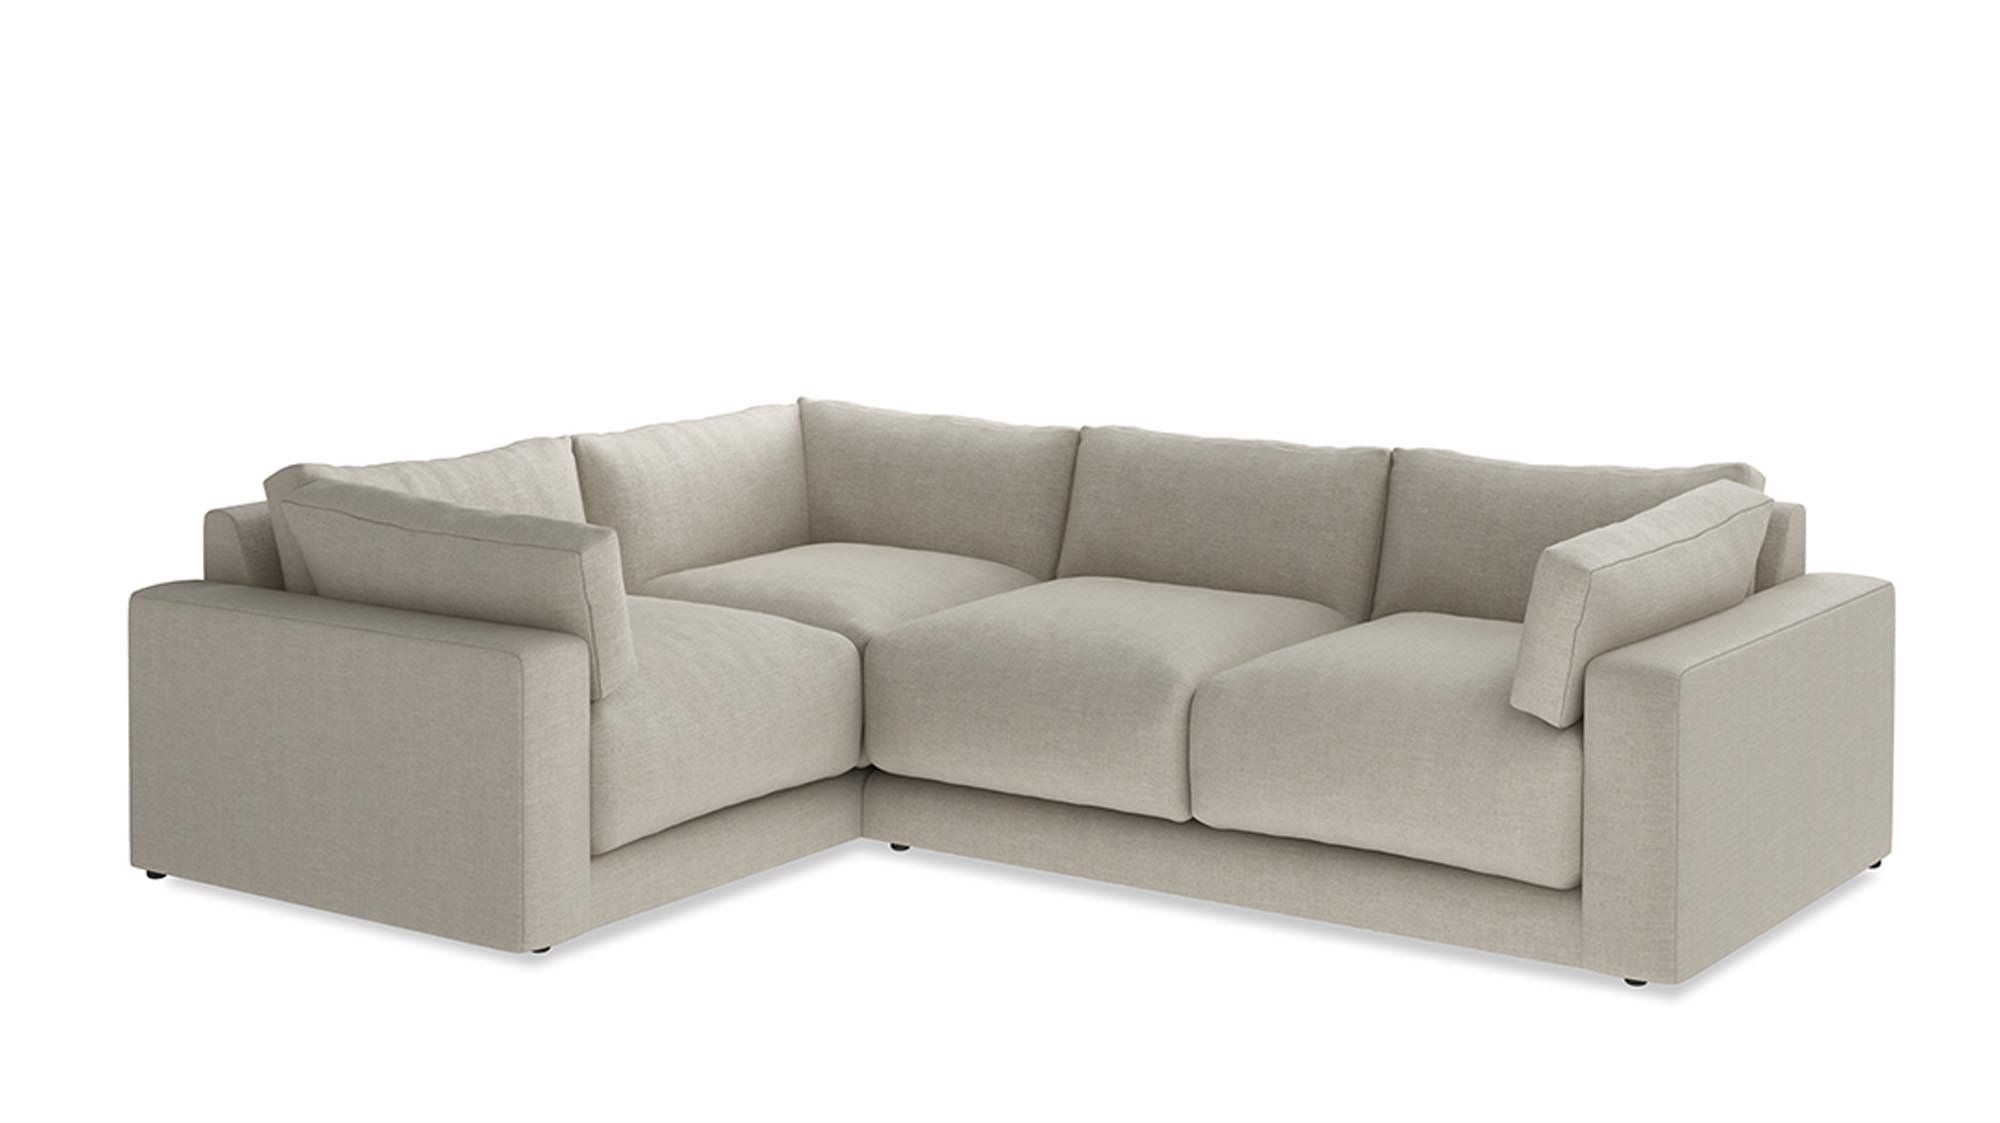 Merveilleux Corner Sofas First Took Off In The 1970s When Open Plan Living Became  Popular. Now Theyu0027re Back In Vogue, With This British Made Option From Loaf  A Fabulous ...